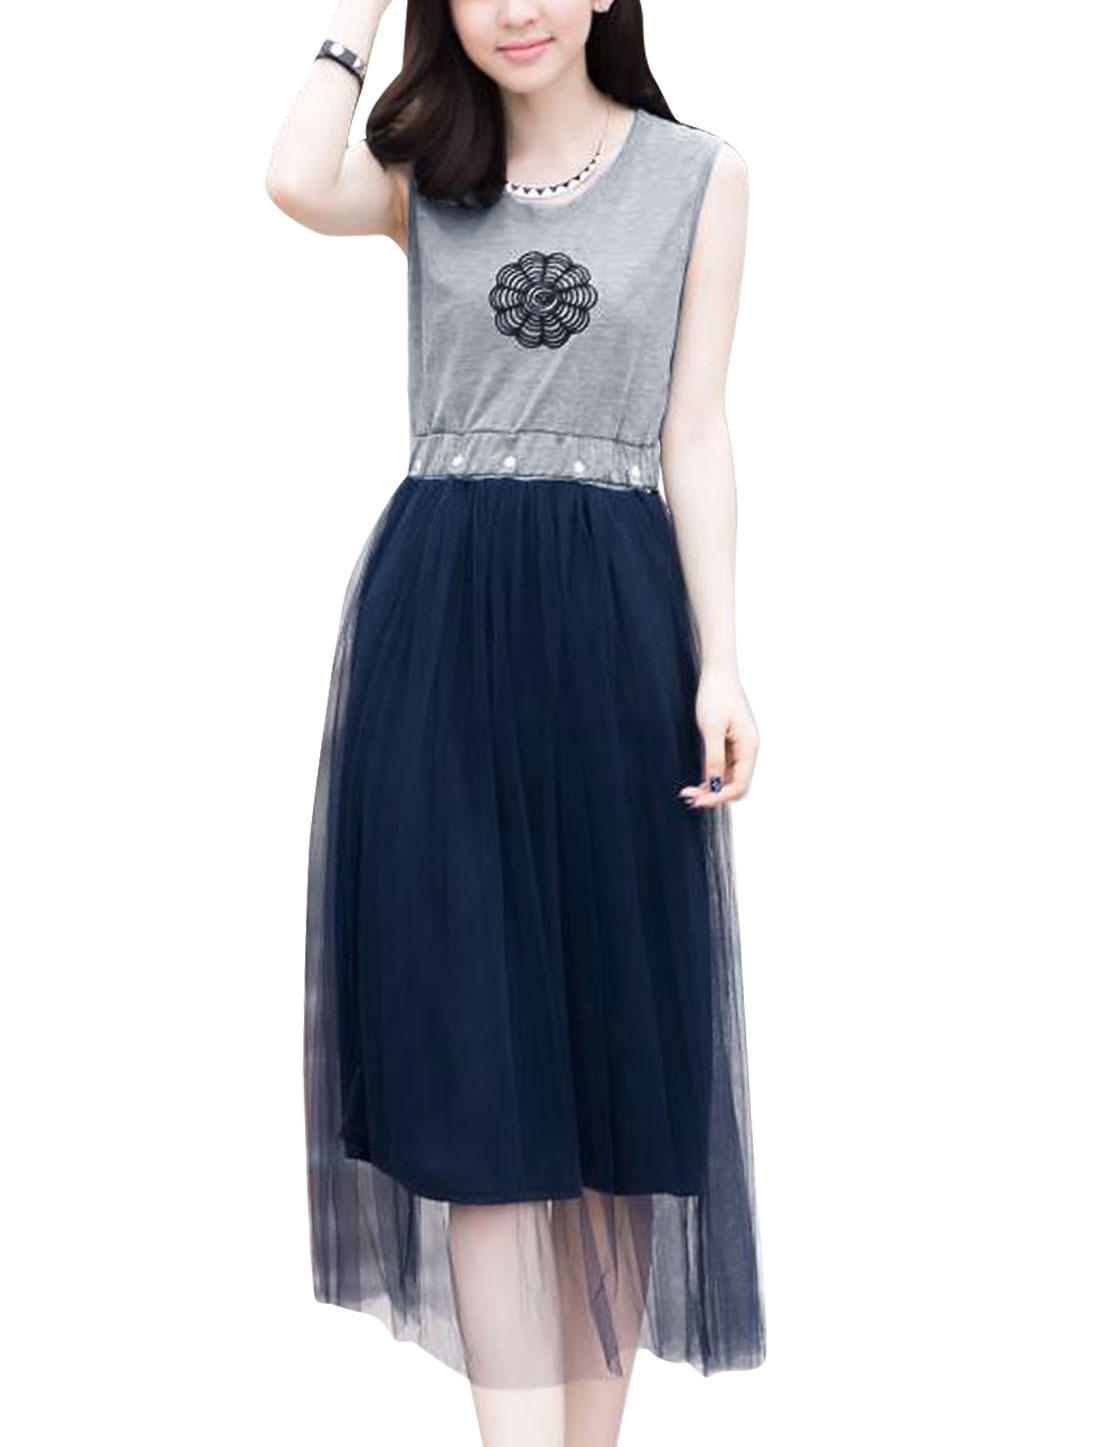 Lady Round Neck Embroidered Panel A-Line Dress Light Gray Navy Blue XS